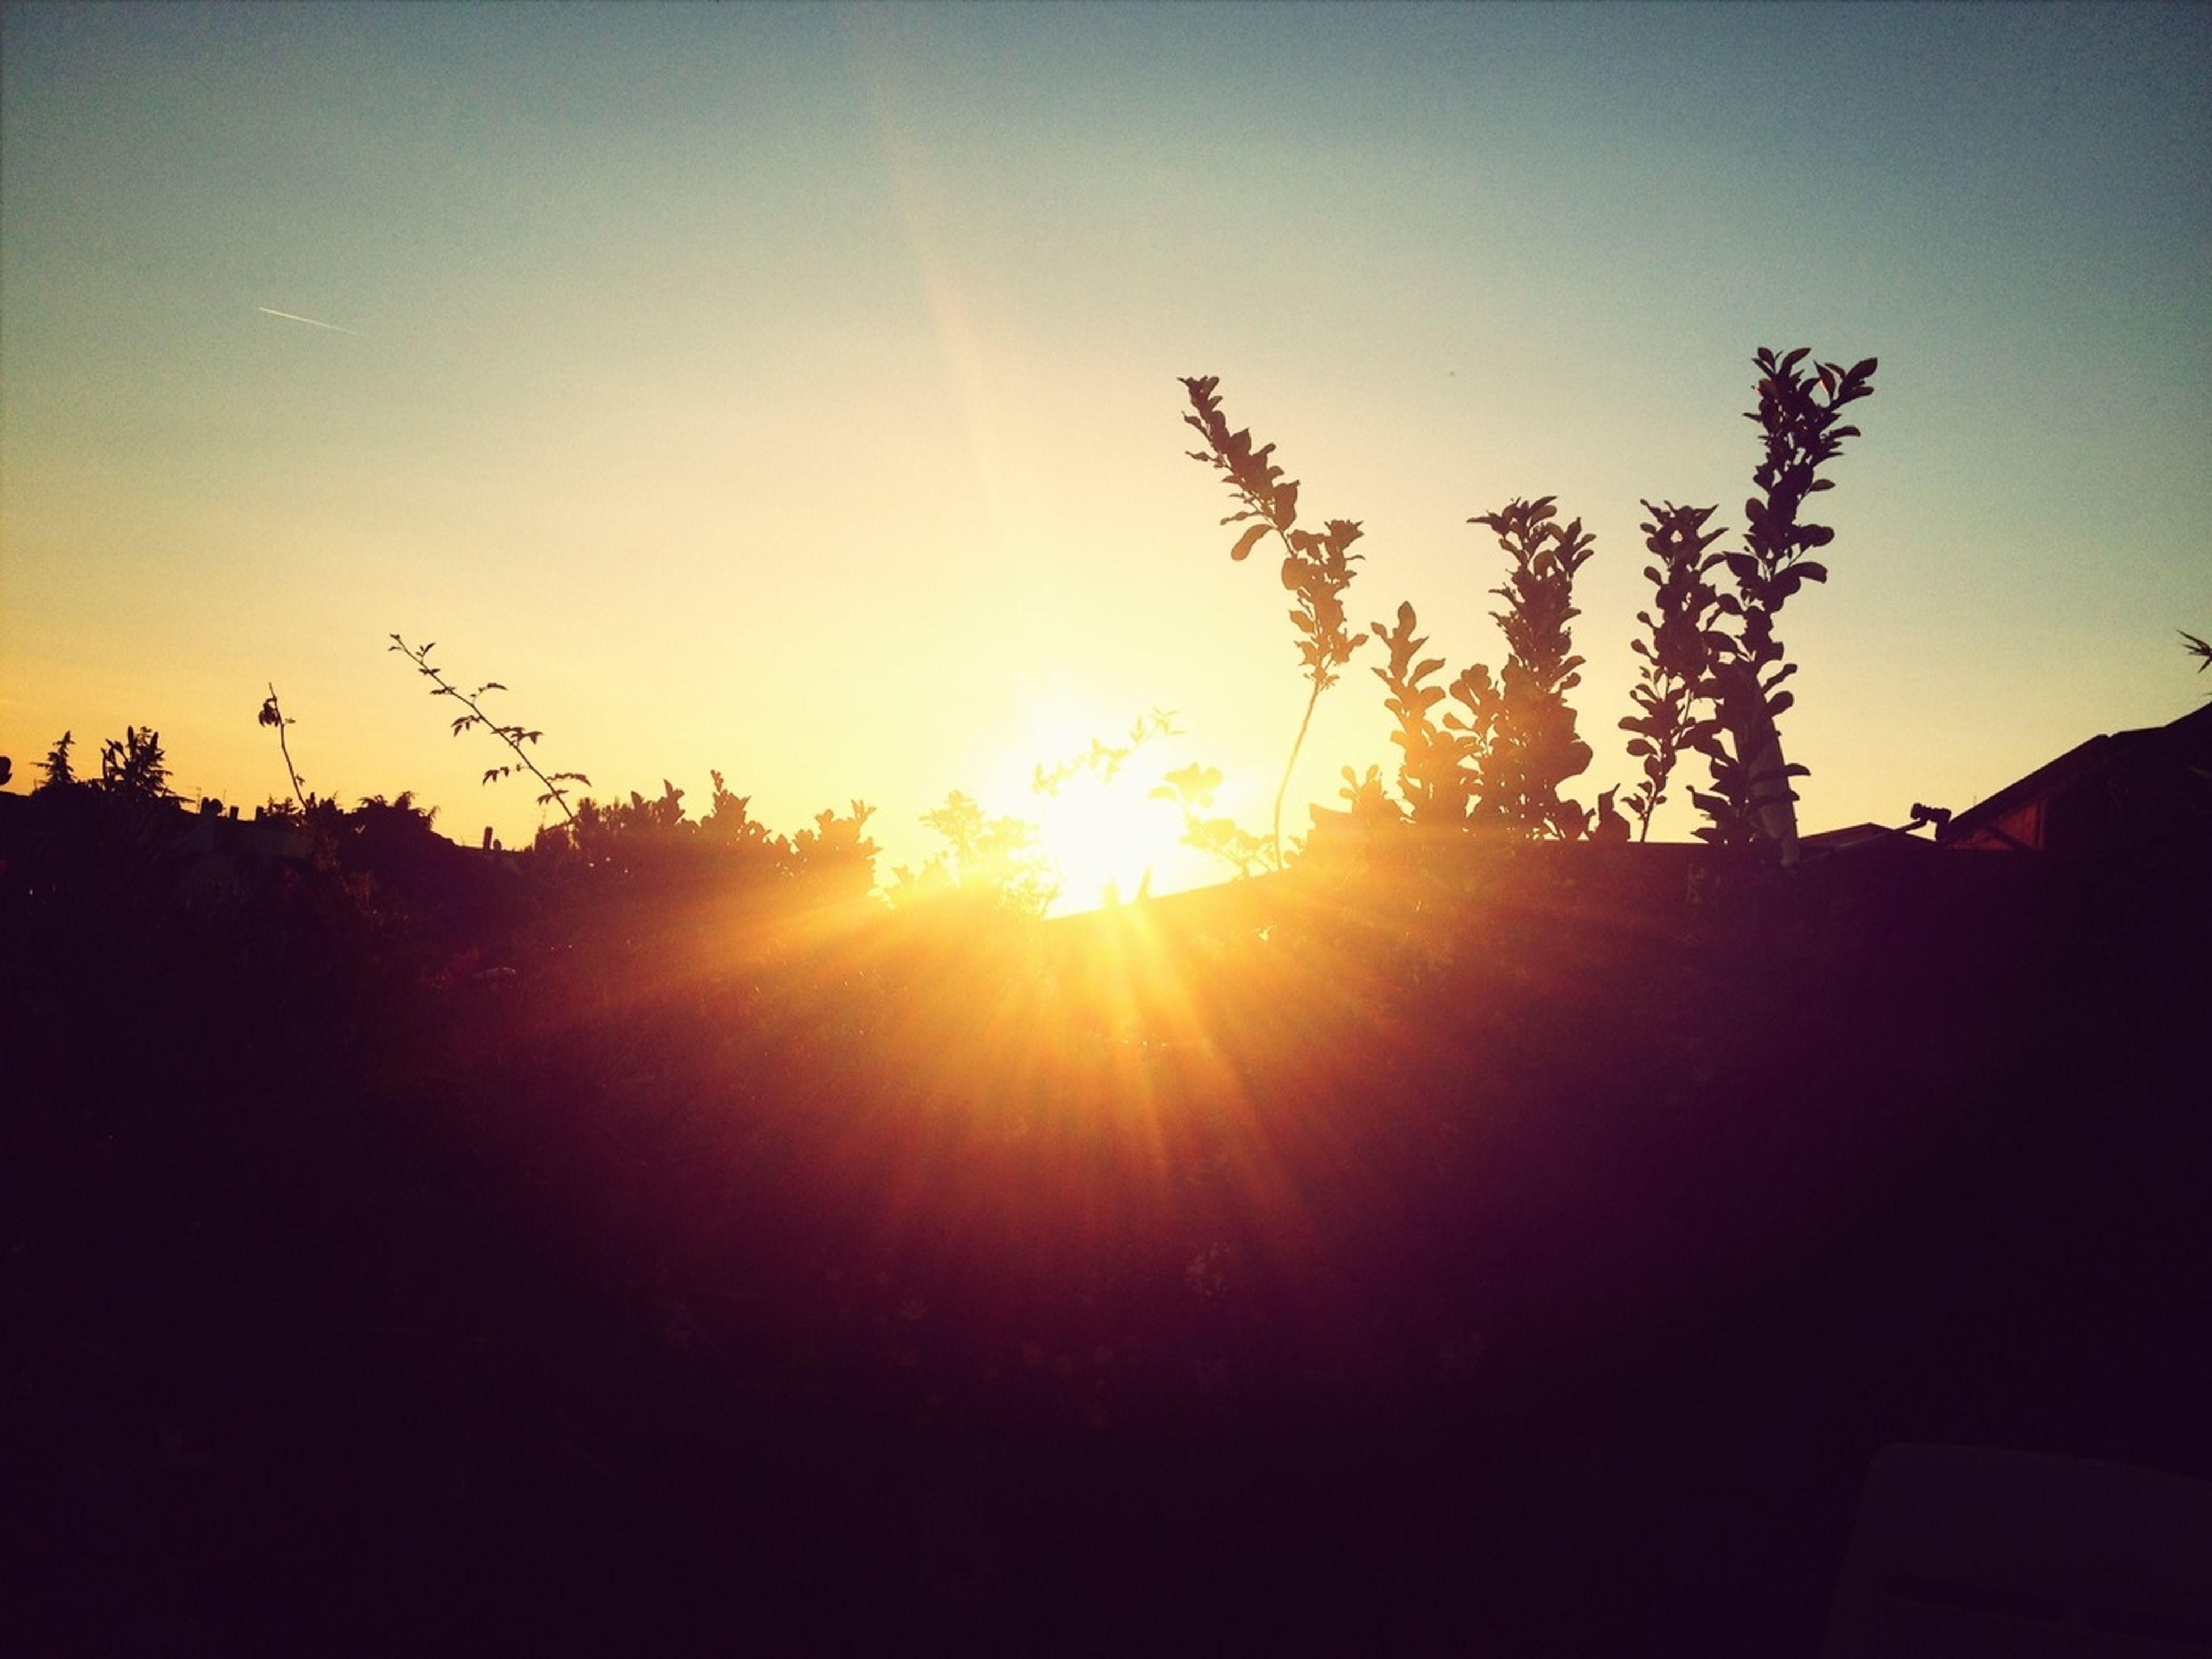 sun, sunset, silhouette, sunbeam, sunlight, clear sky, lens flare, copy space, tranquility, tranquil scene, beauty in nature, nature, tree, landscape, scenics, sky, bright, field, no people, outdoors